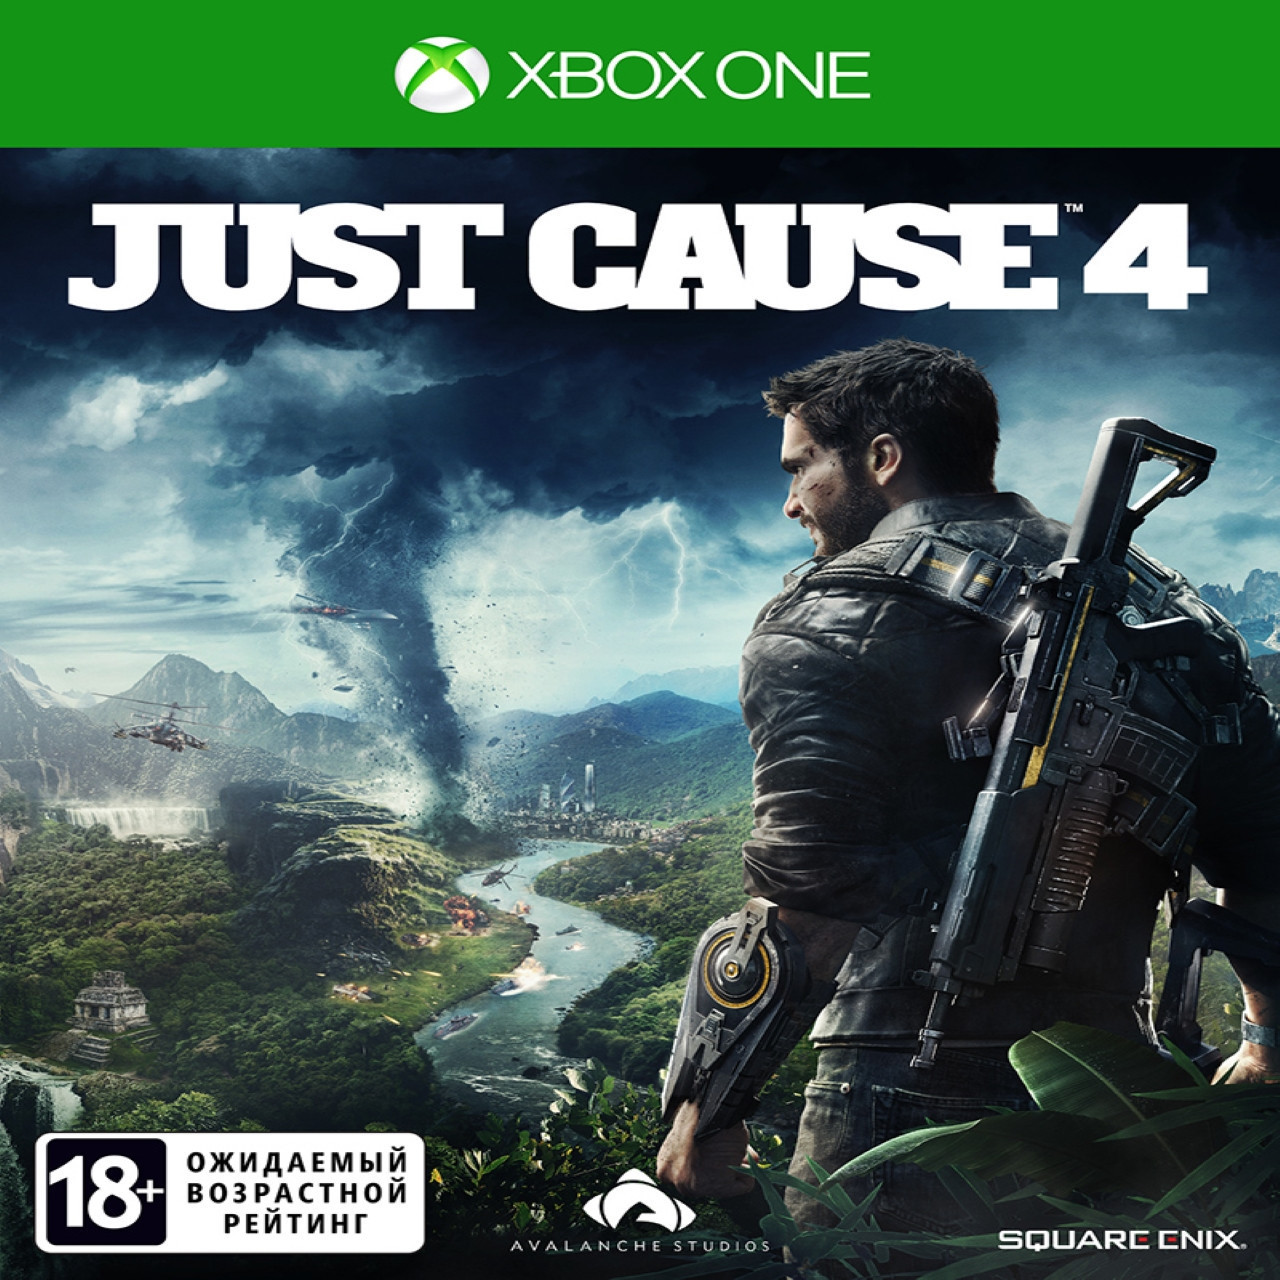 Just Cause 4 RUS Xbox One